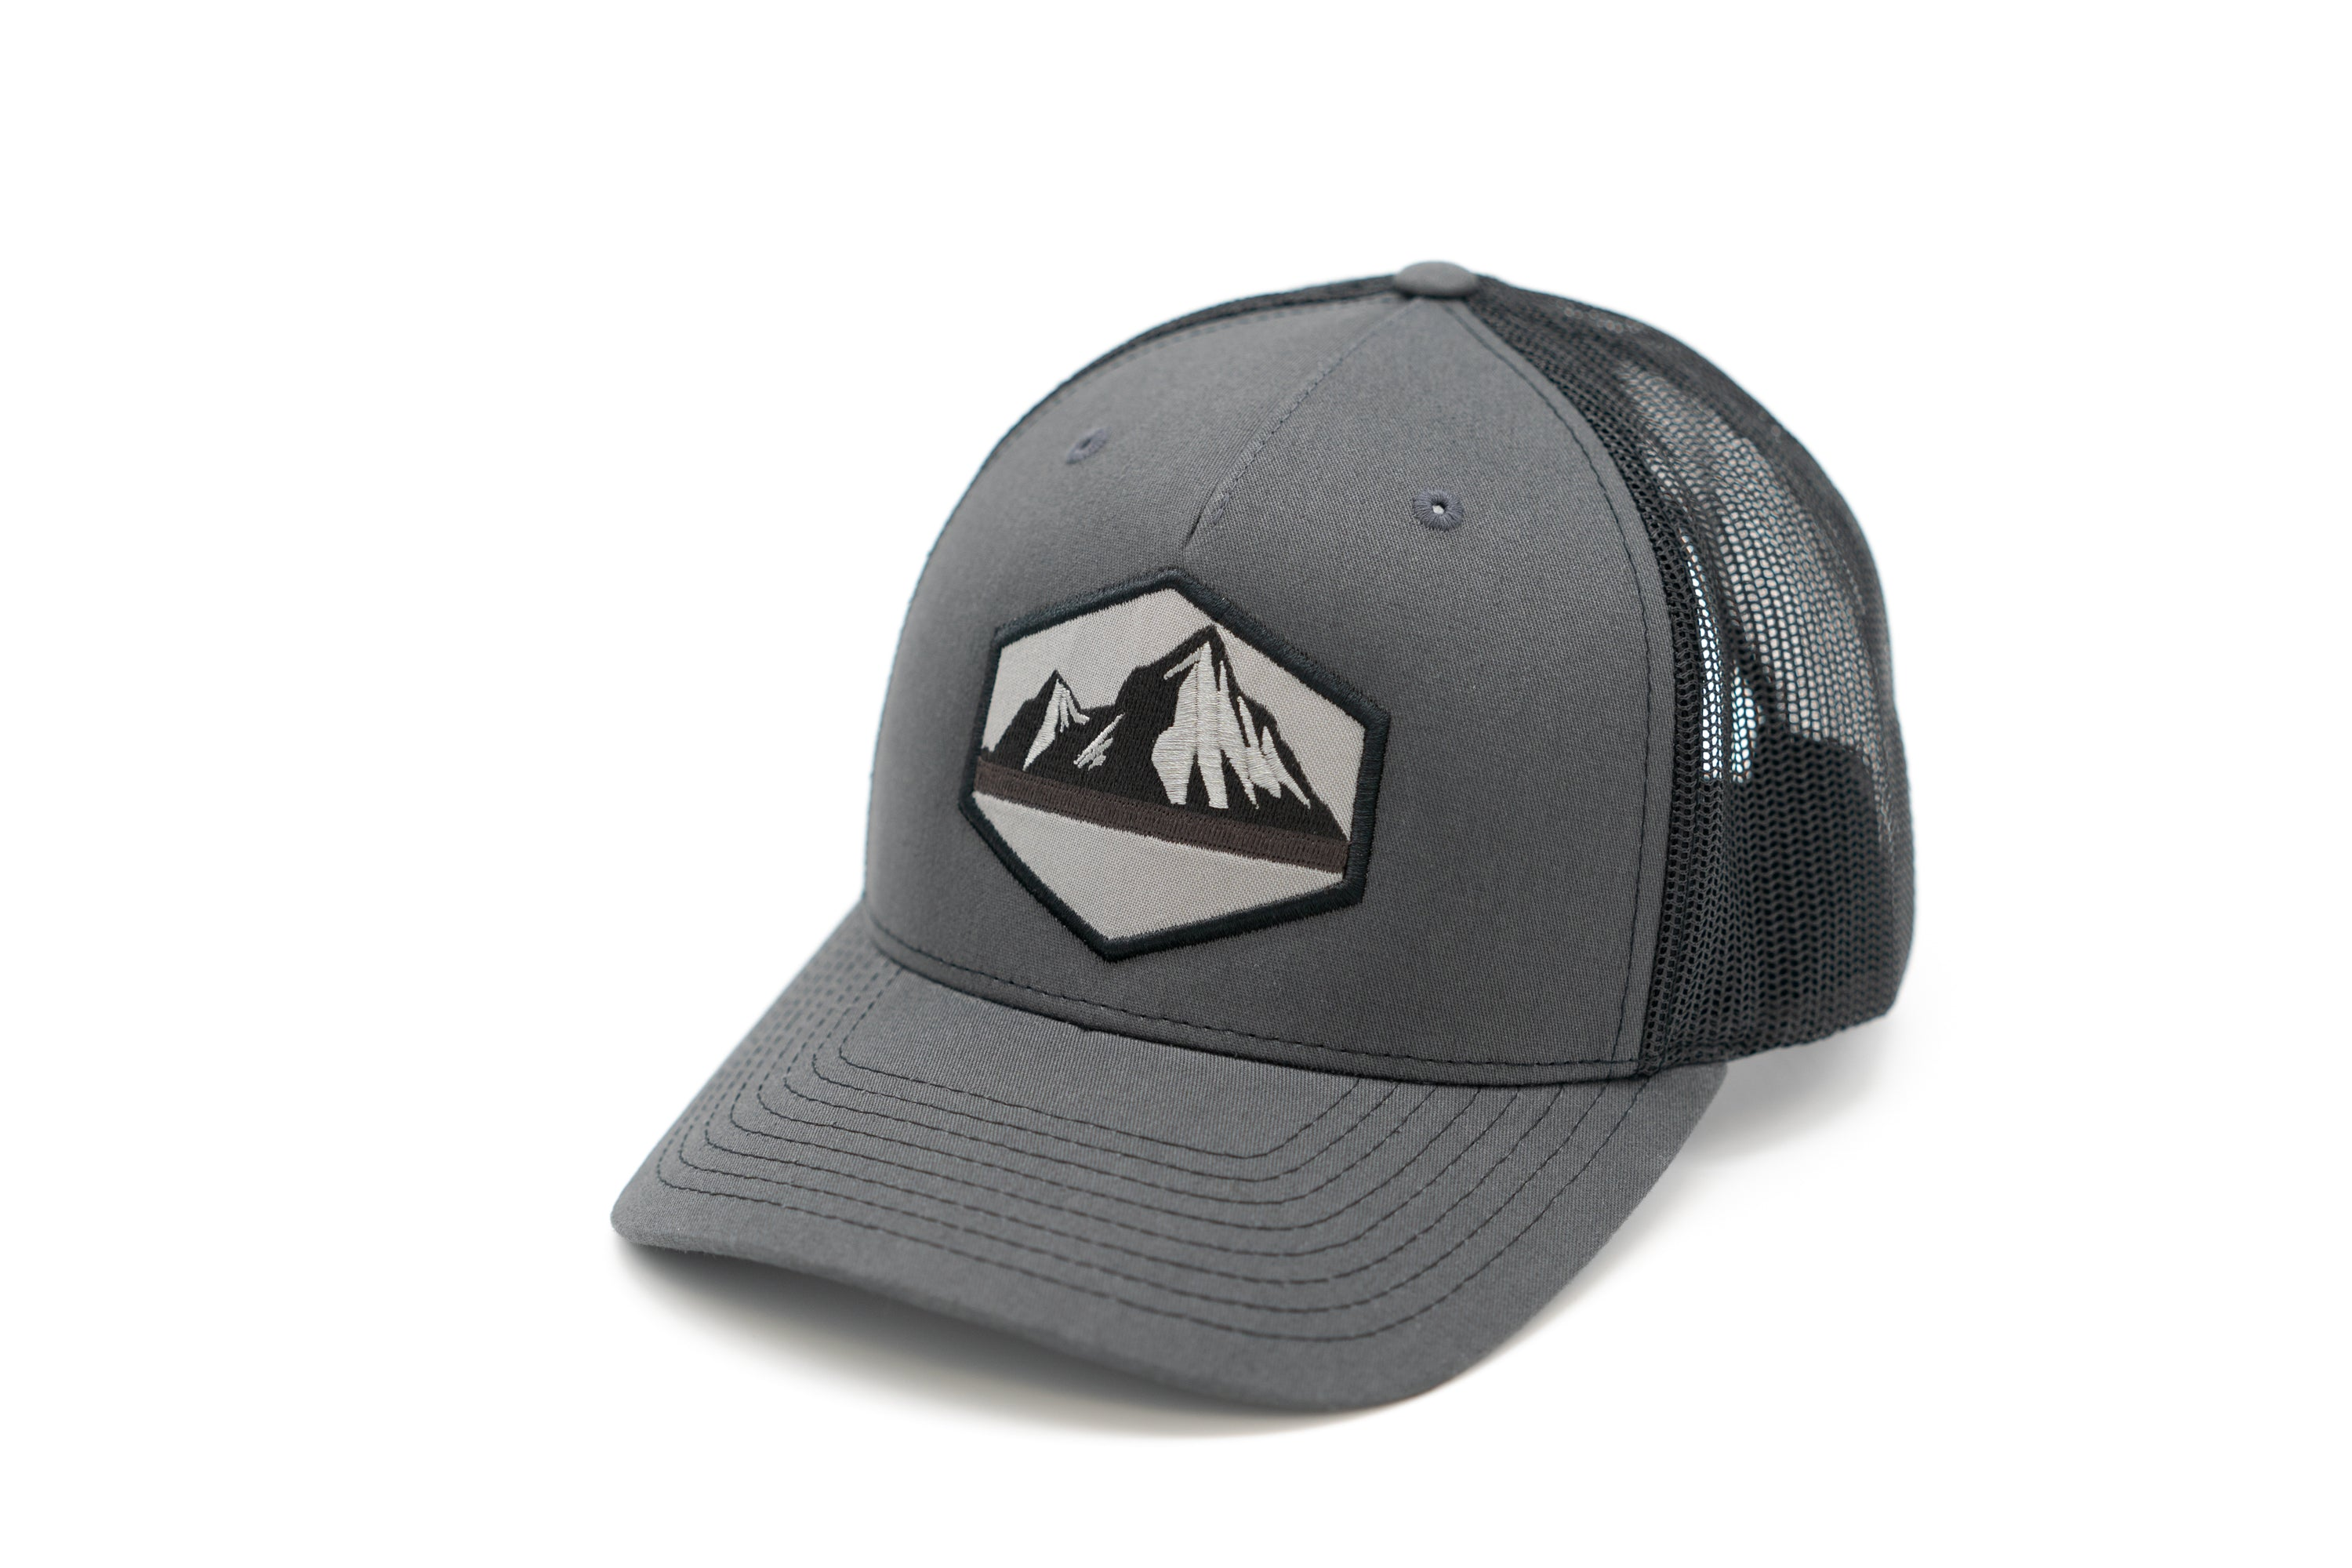 5 Panel Snapback Trucker Hat With Mountain Patch - Charcoal Front and Black Mesh Back